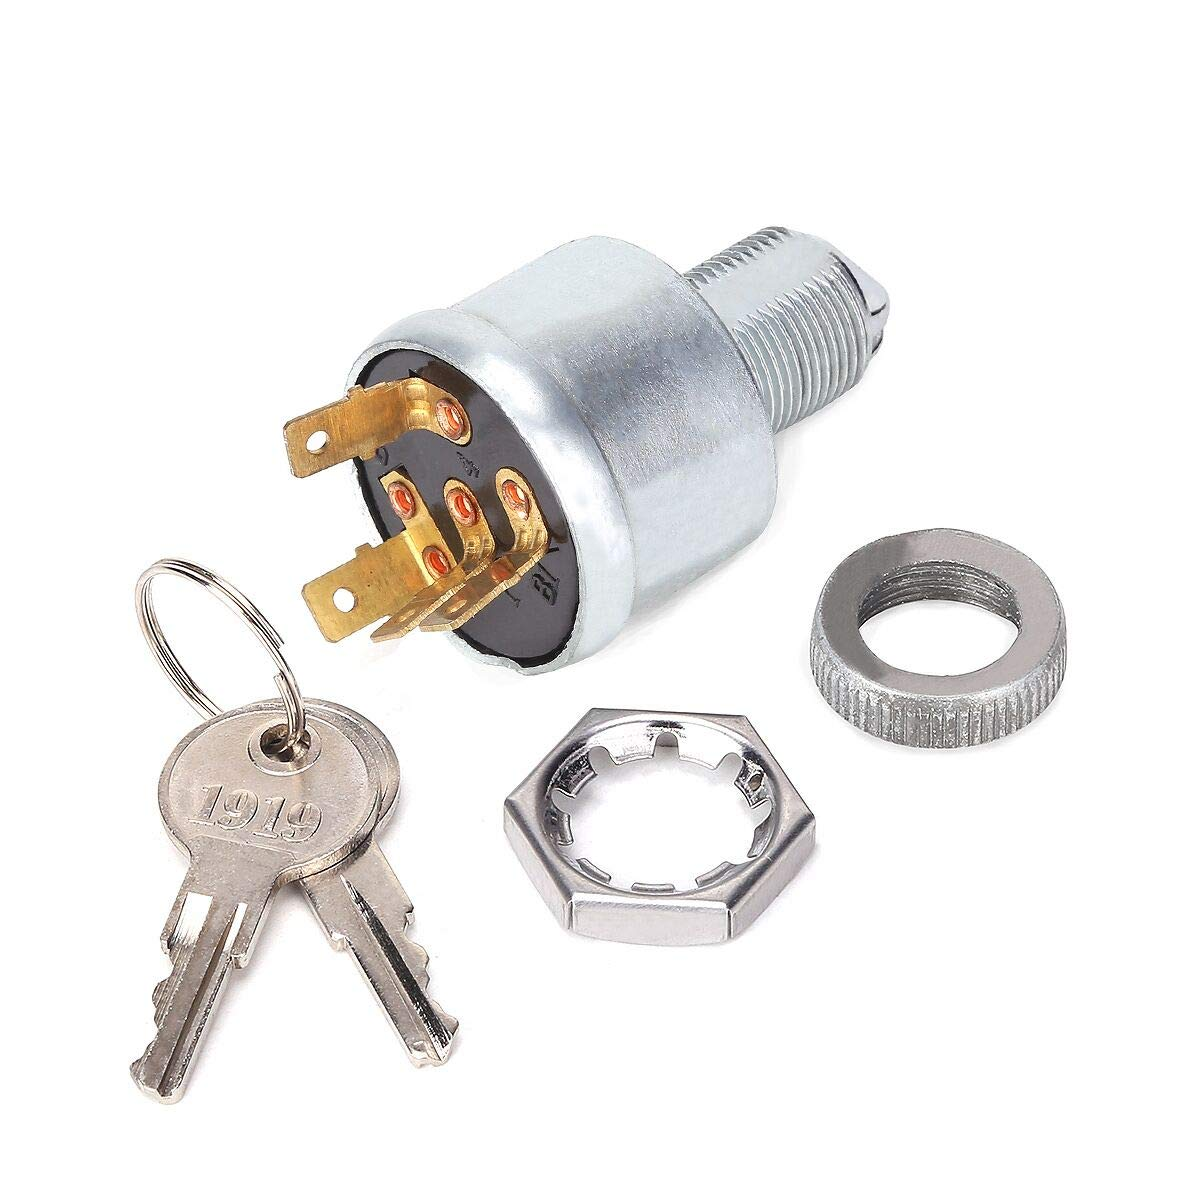 10l0l Ignition Switch For Ezgo 33639g01 Is Using A To Power And Momentary Start Cars With Lights Standard Key Automotive